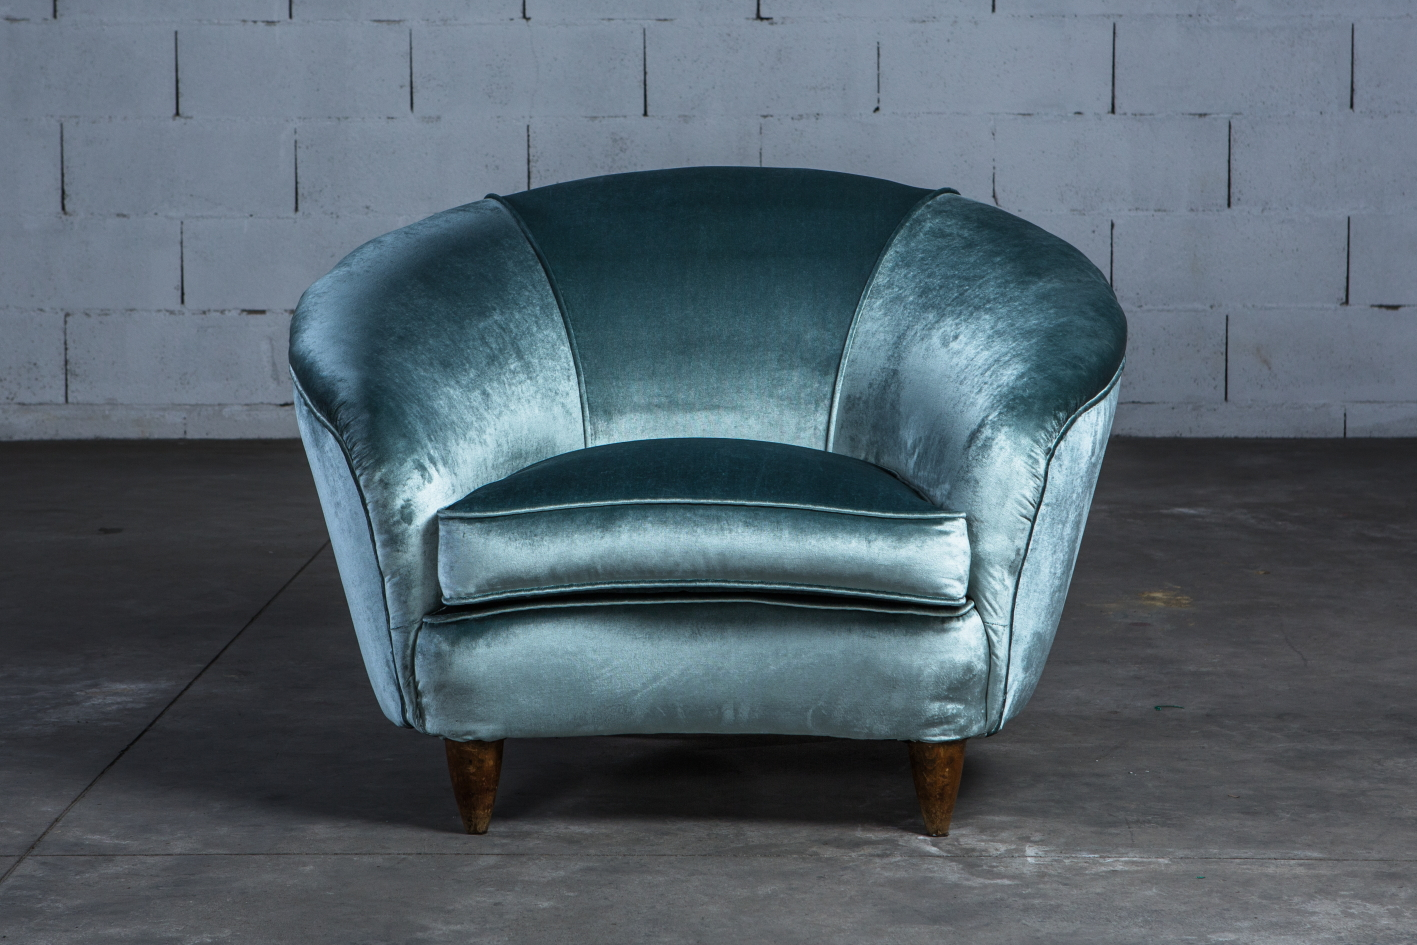 A beautiful pair of Italian lounge chairs in light blue silk velvet - Italy 1940s - Front view